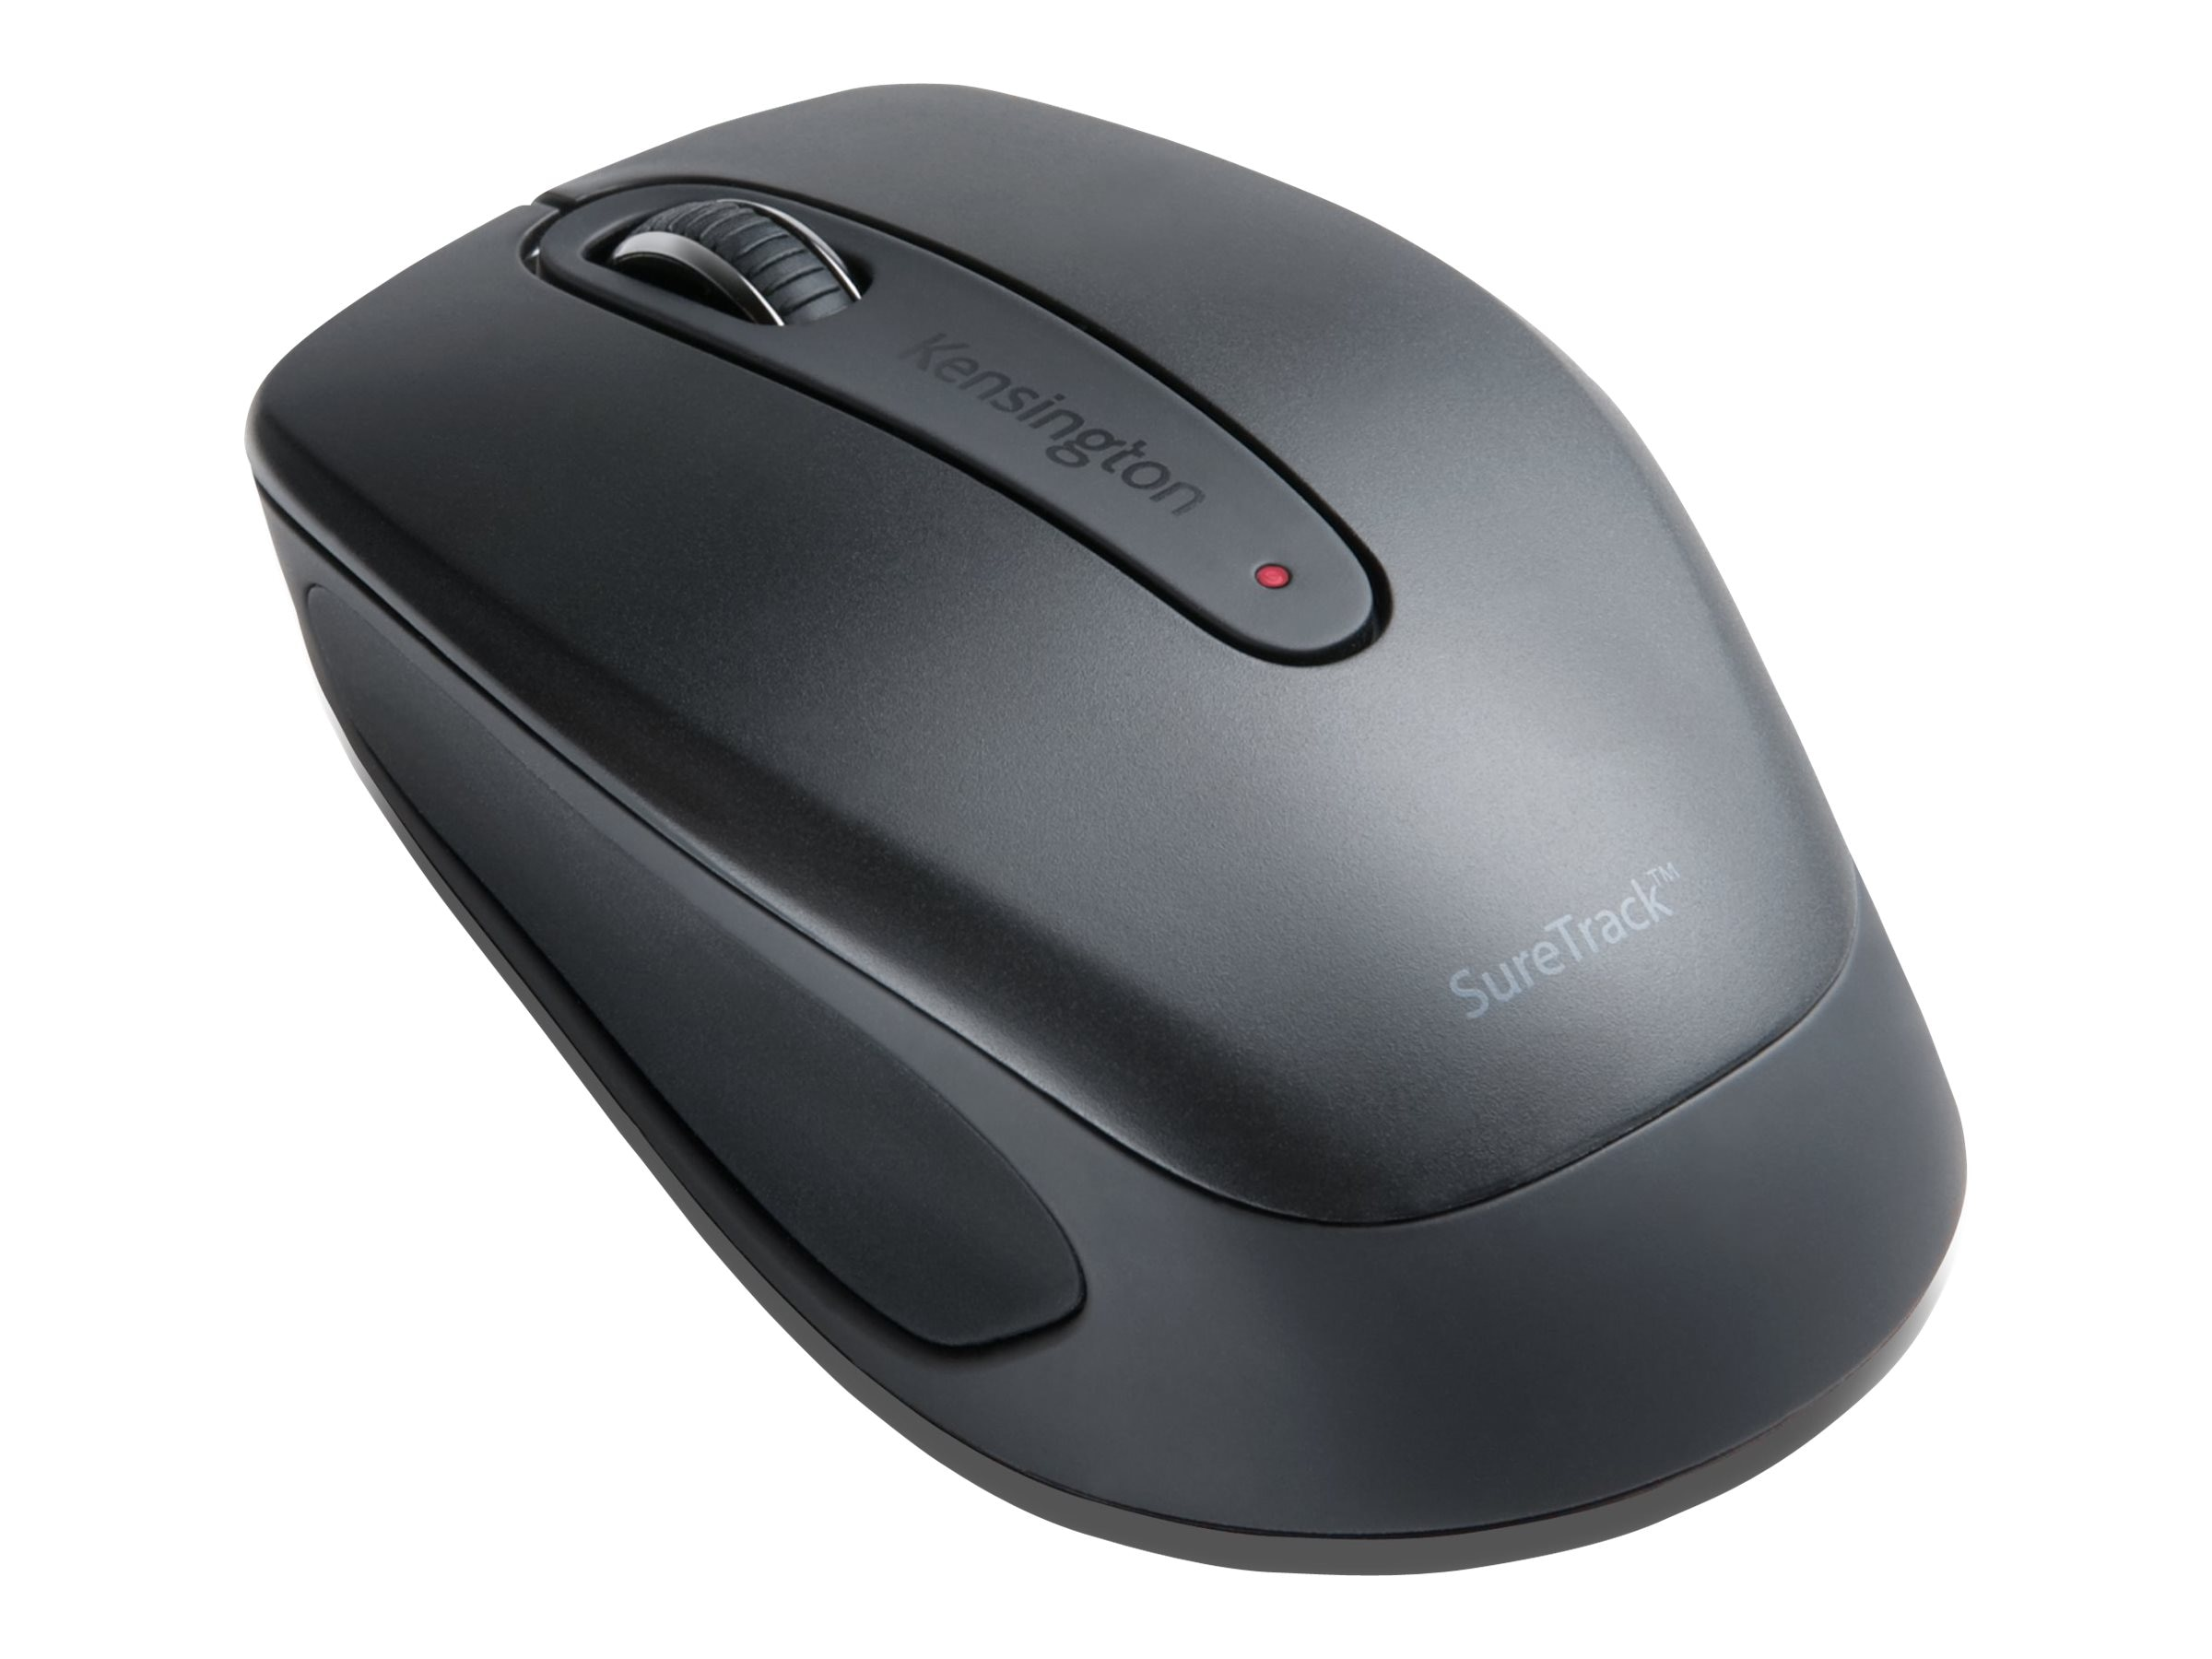 Kensington SureTrack Bluetooth Mouse, Black, K72437AM, 15056921, Mice & Cursor Control Devices